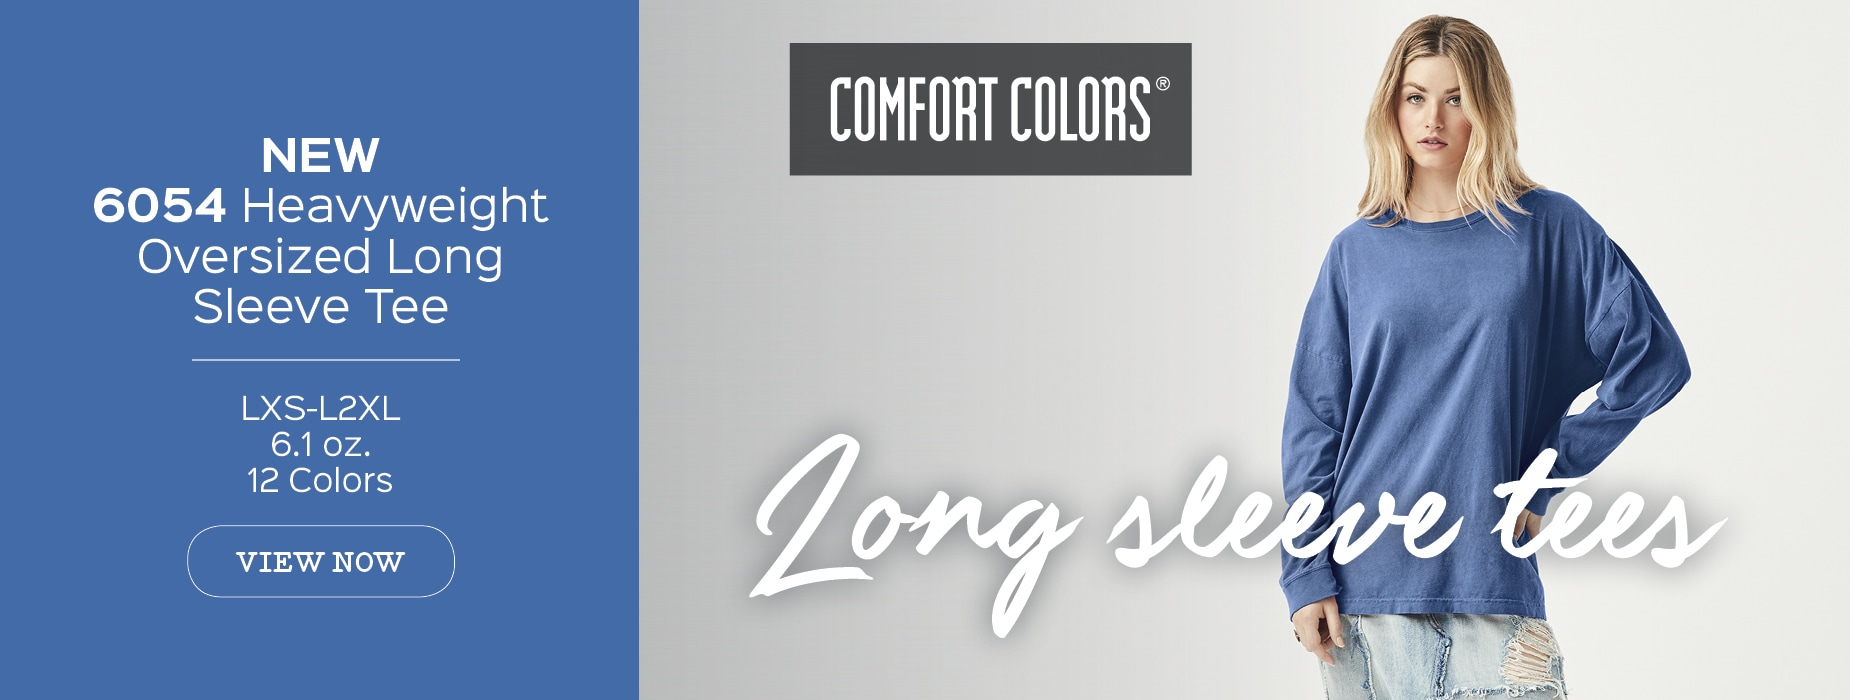 New Style 6054, Heavyweight Oversized Comfort Colors Long Sleeve Tee View Now